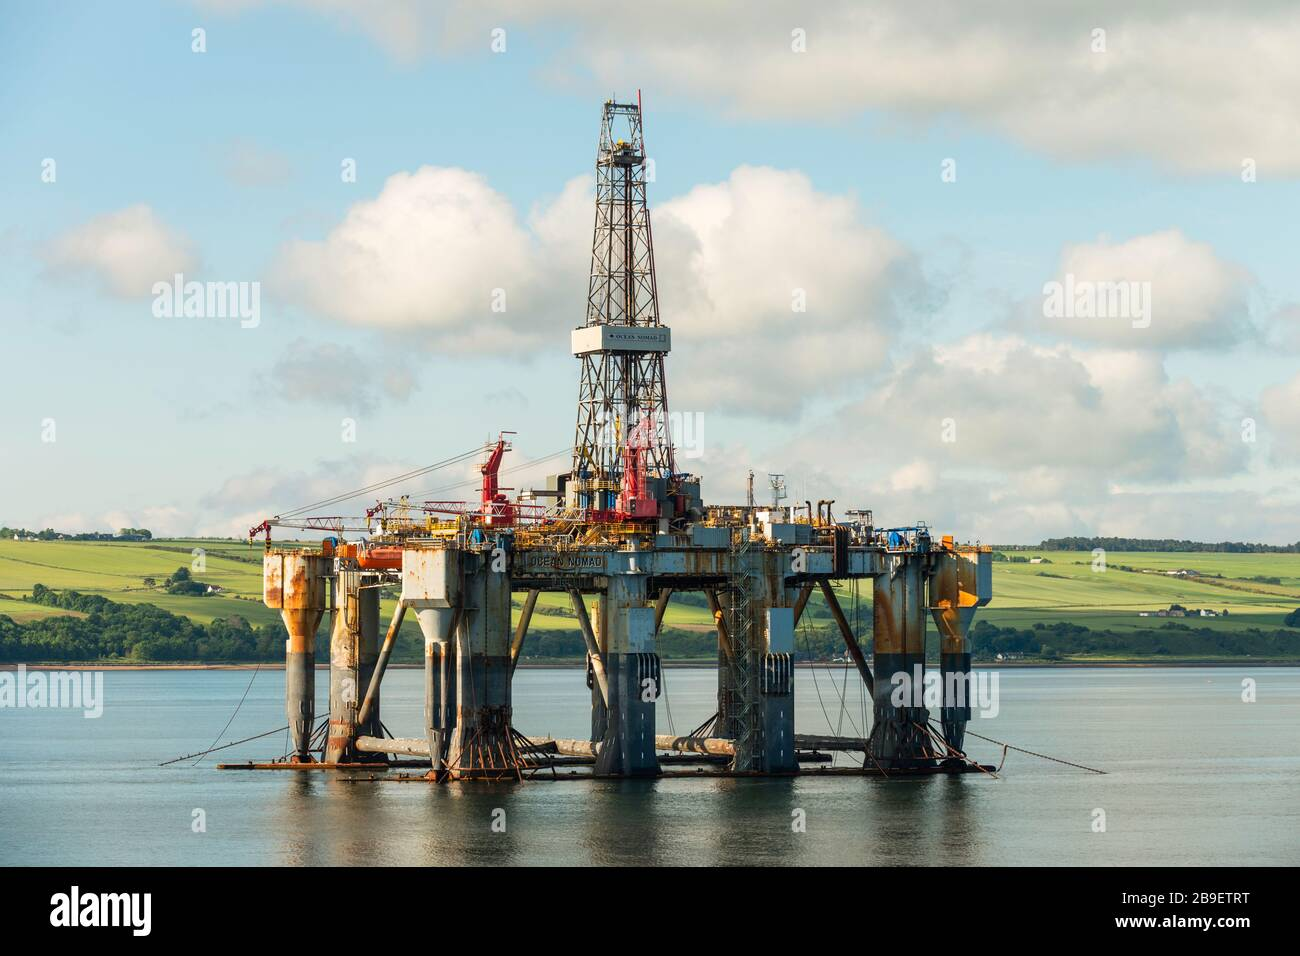 Ocean Nomad (1975), an offshore oil jackup drilling platform, lies decommissioned in the Cromarty Firth, Scotland, UK, 2016. Stock Photo